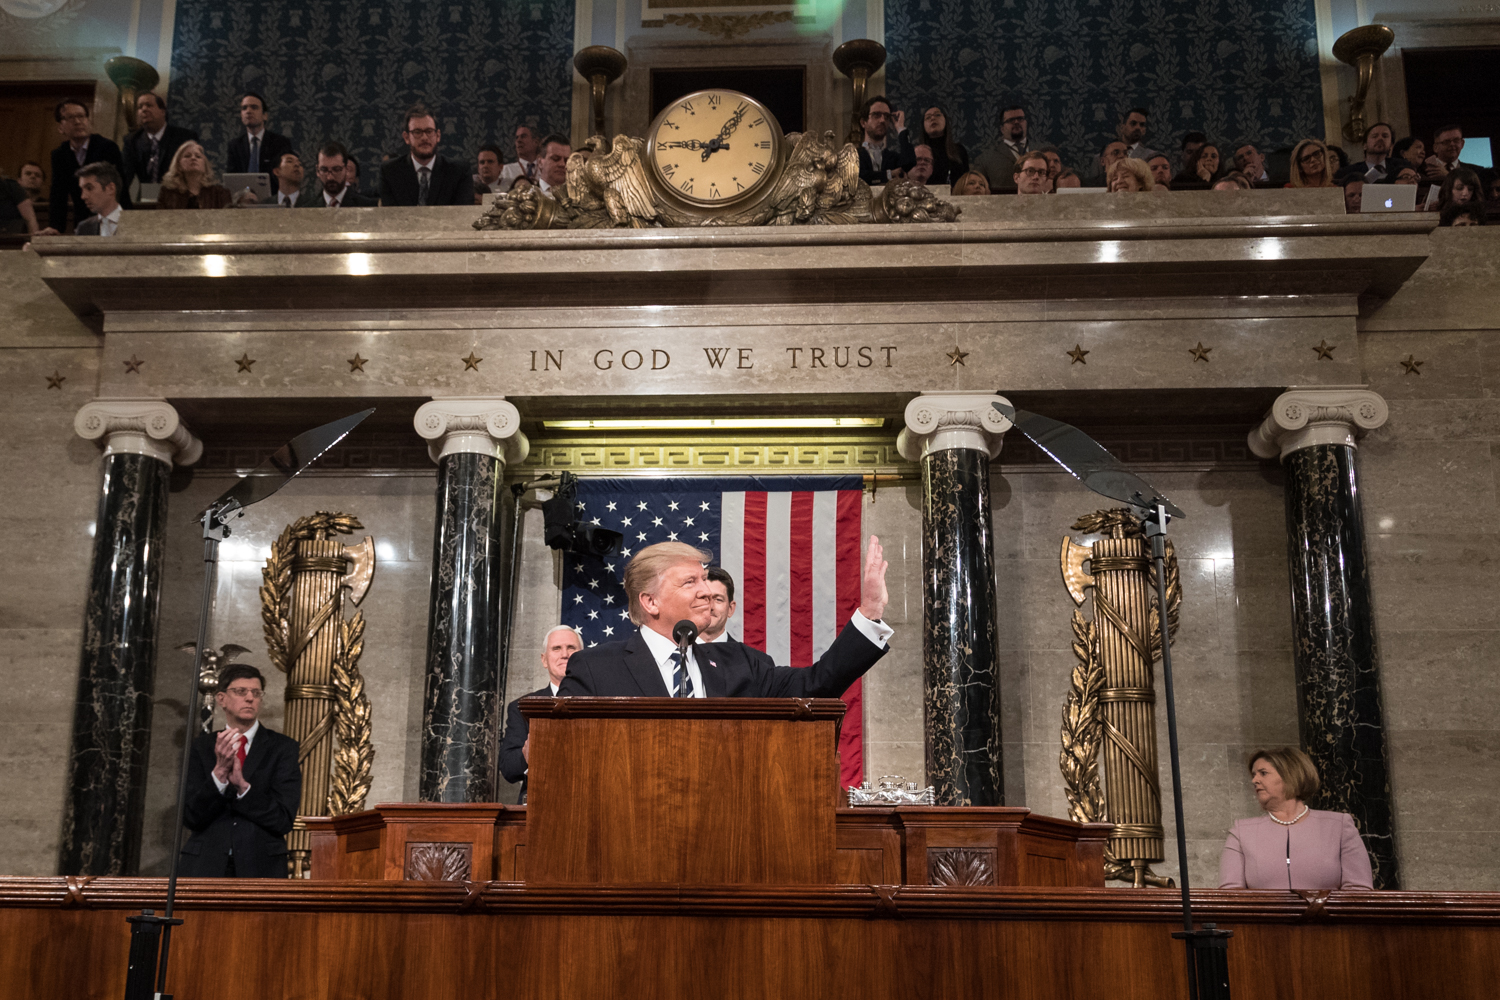 President+Trump+is+trying+to+pass+new+legislation+to+repeal+and+replace+Obamacare.